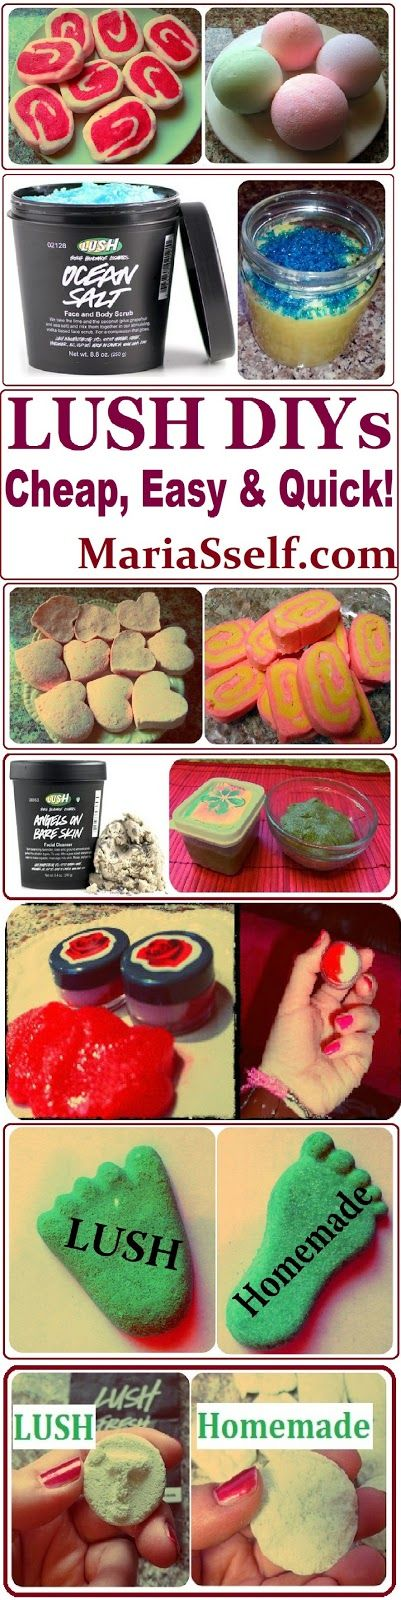 lush valentine's day gift sets